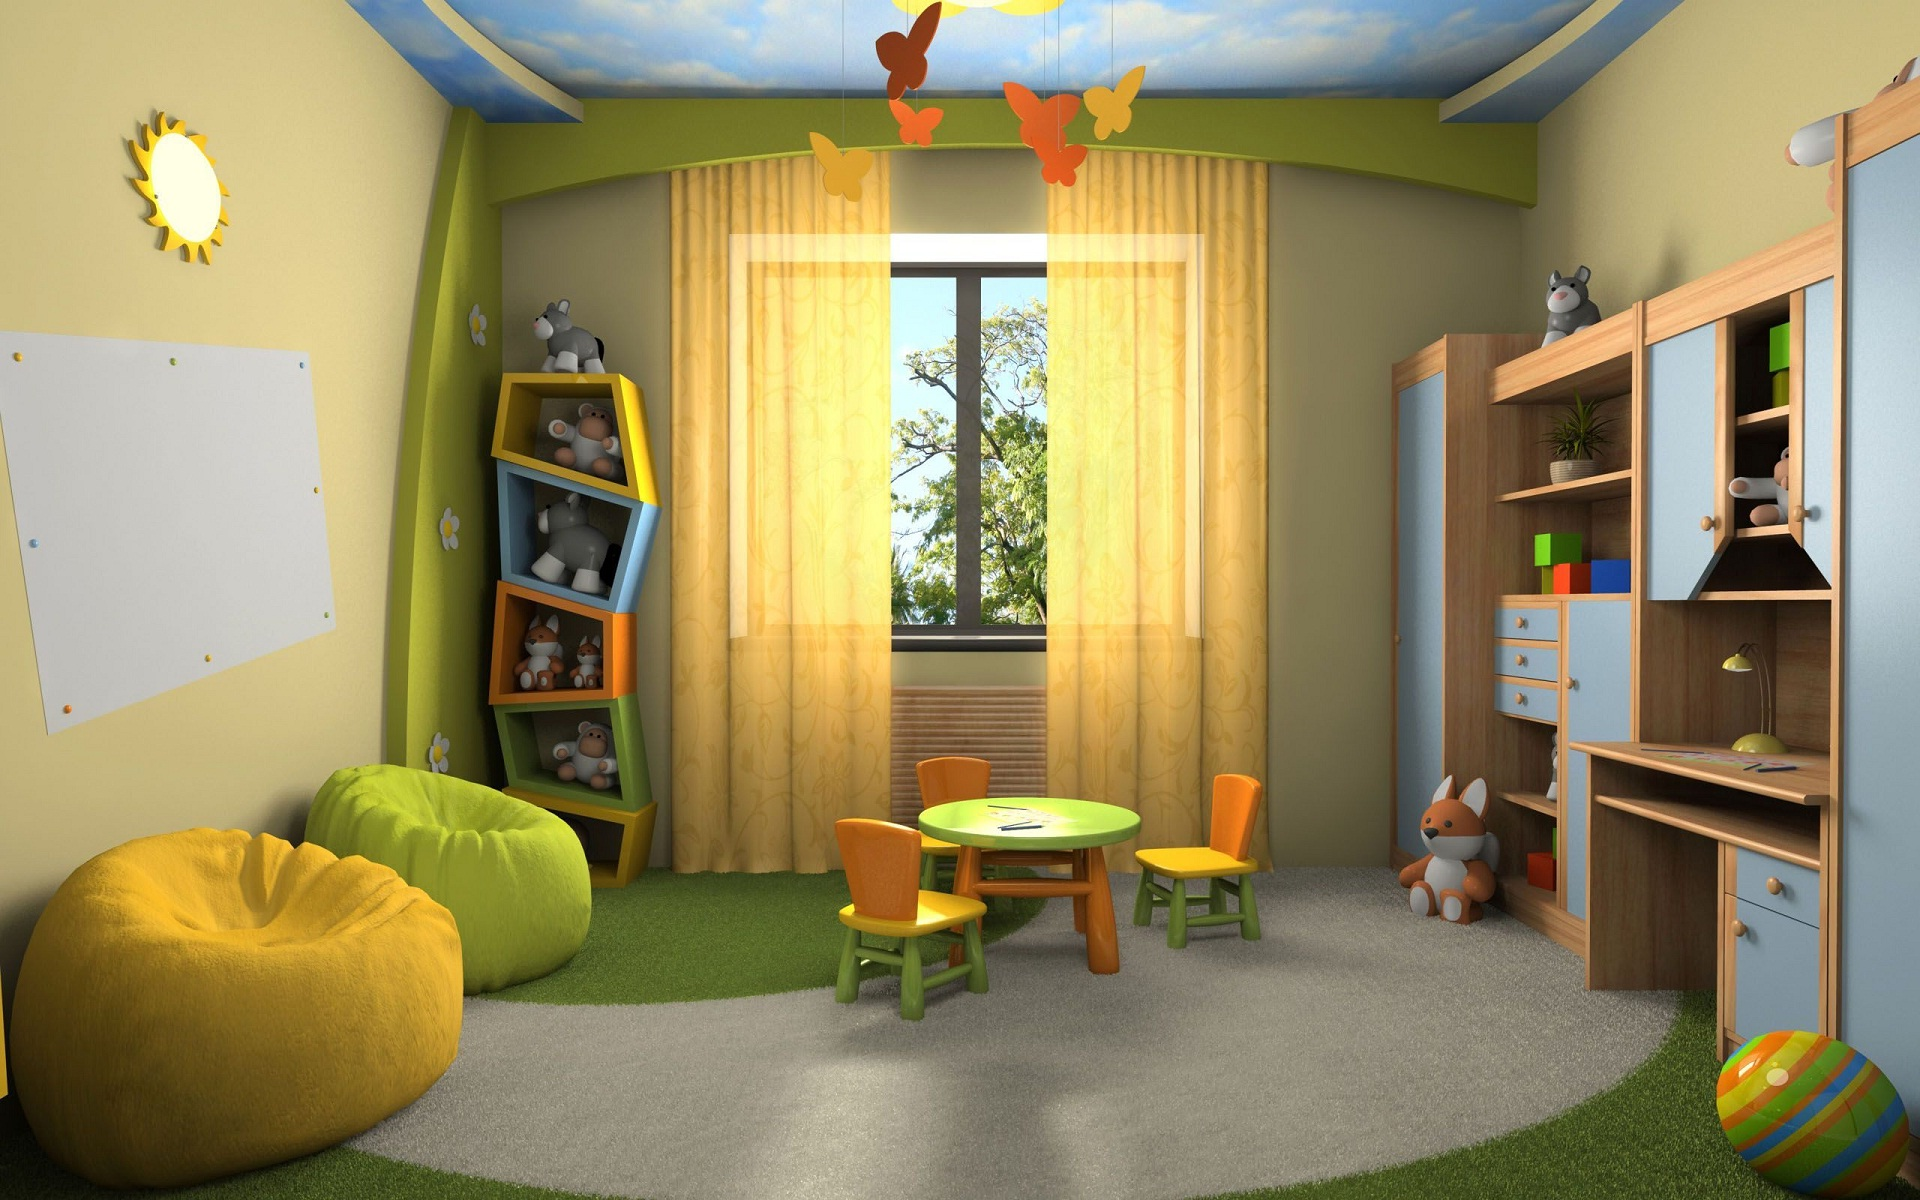 Kids drawing room interior HD wallpapers